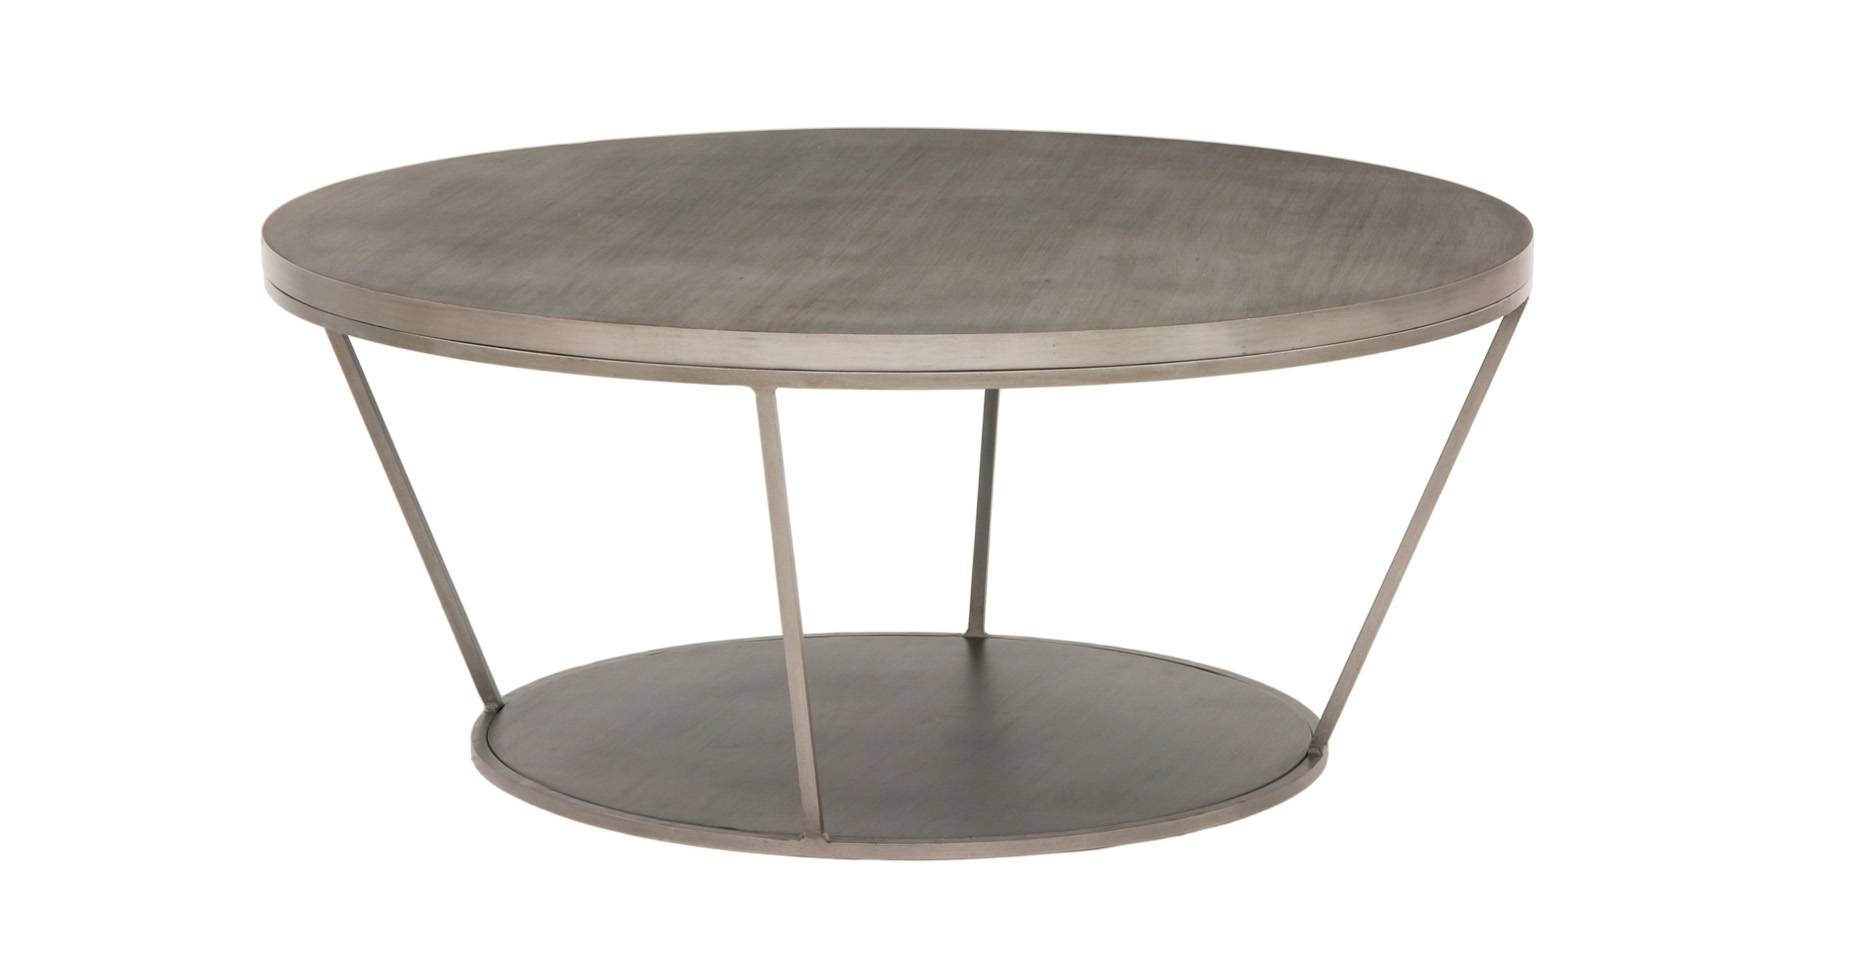 Best Round Coffee Tables - Starrkingschool throughout White Circle Coffee Tables (Image 4 of 30)